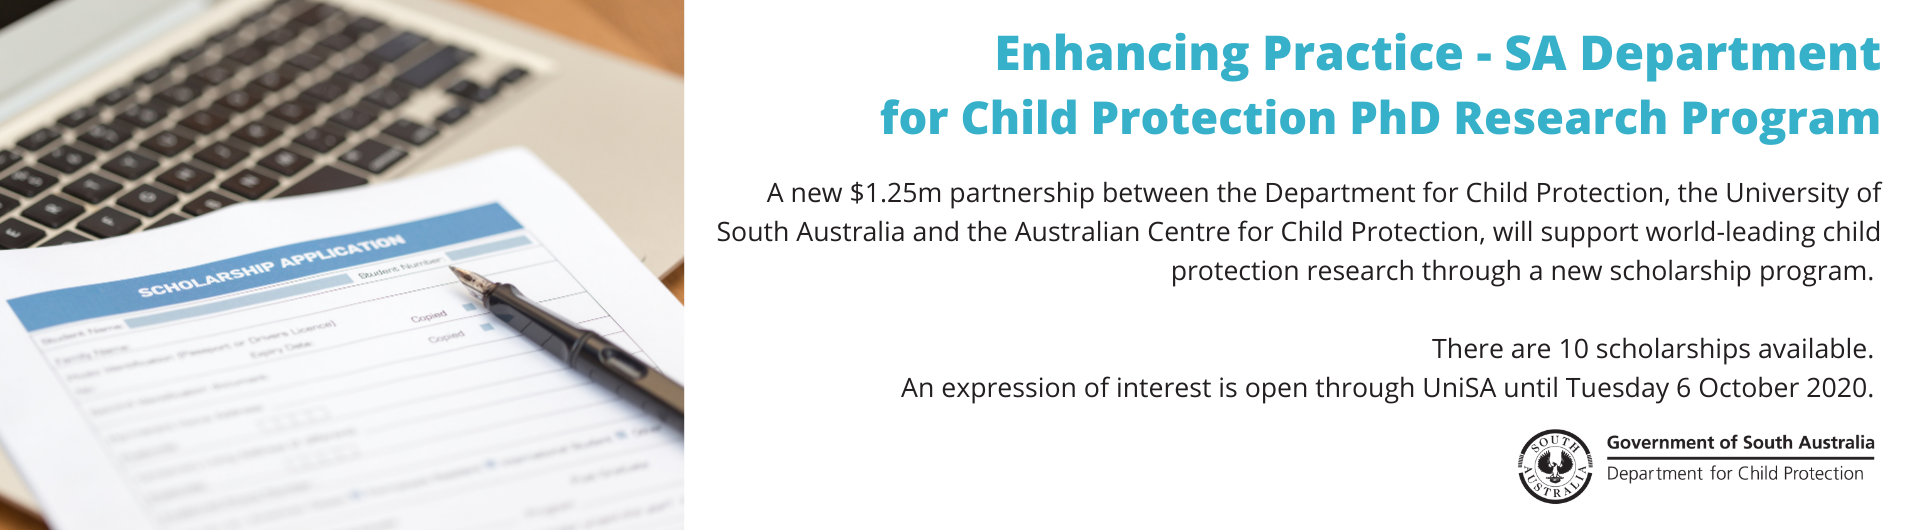 $1.25m to support world-leading child protection research